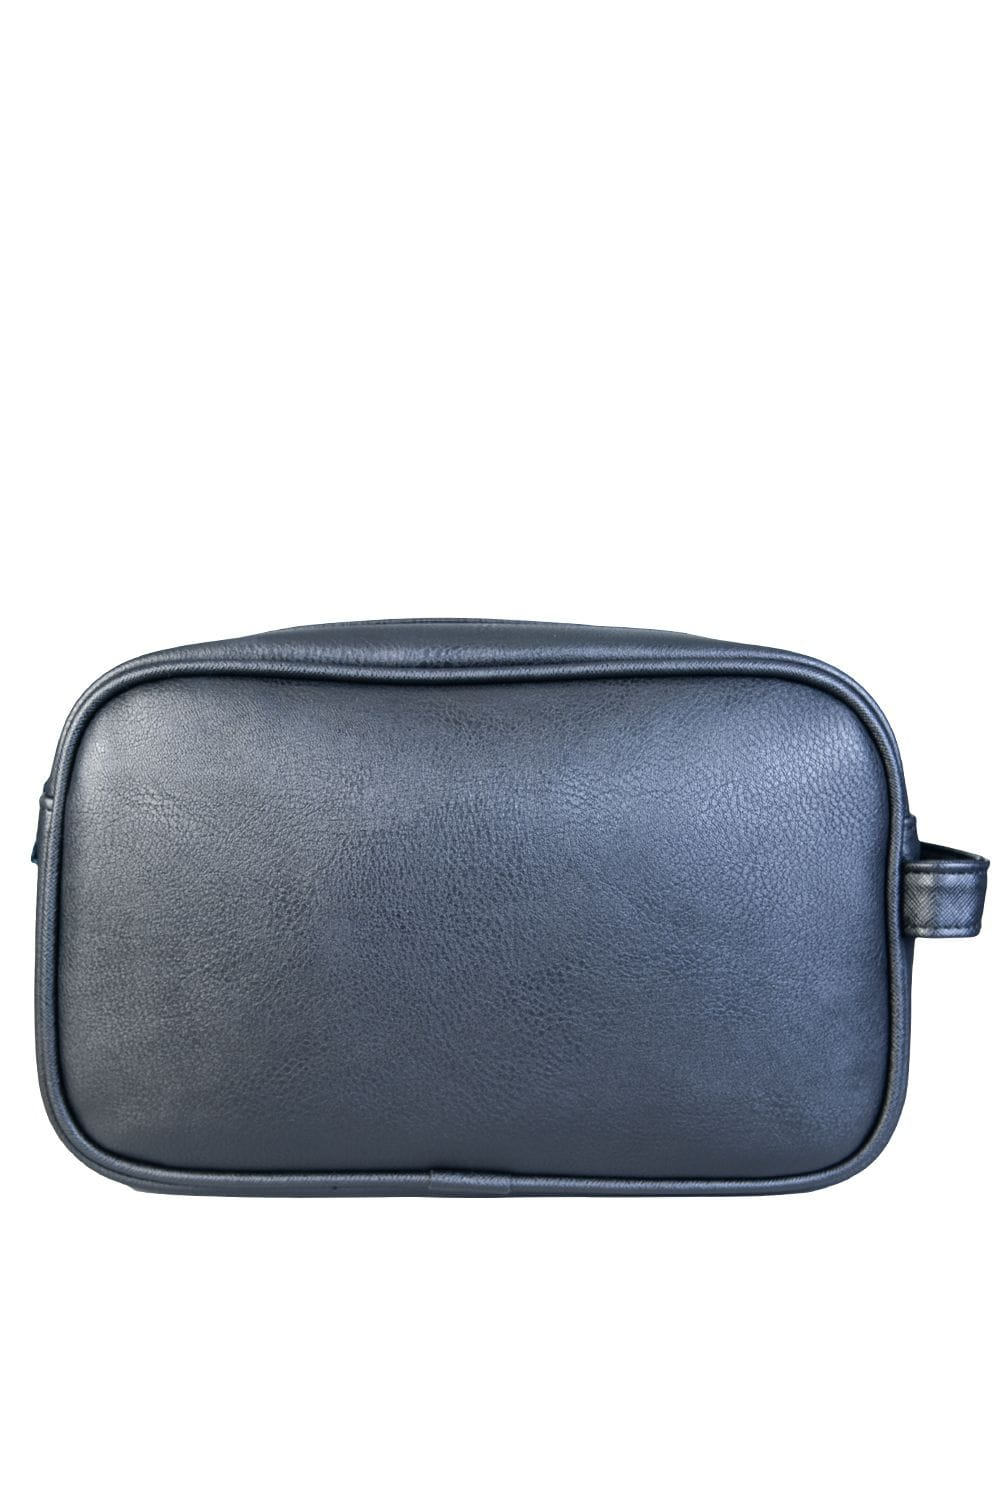 2cc4eadb7121 Ted Baker Wash Bag with Towel MXG-BENNY - Accessories from Sage ...